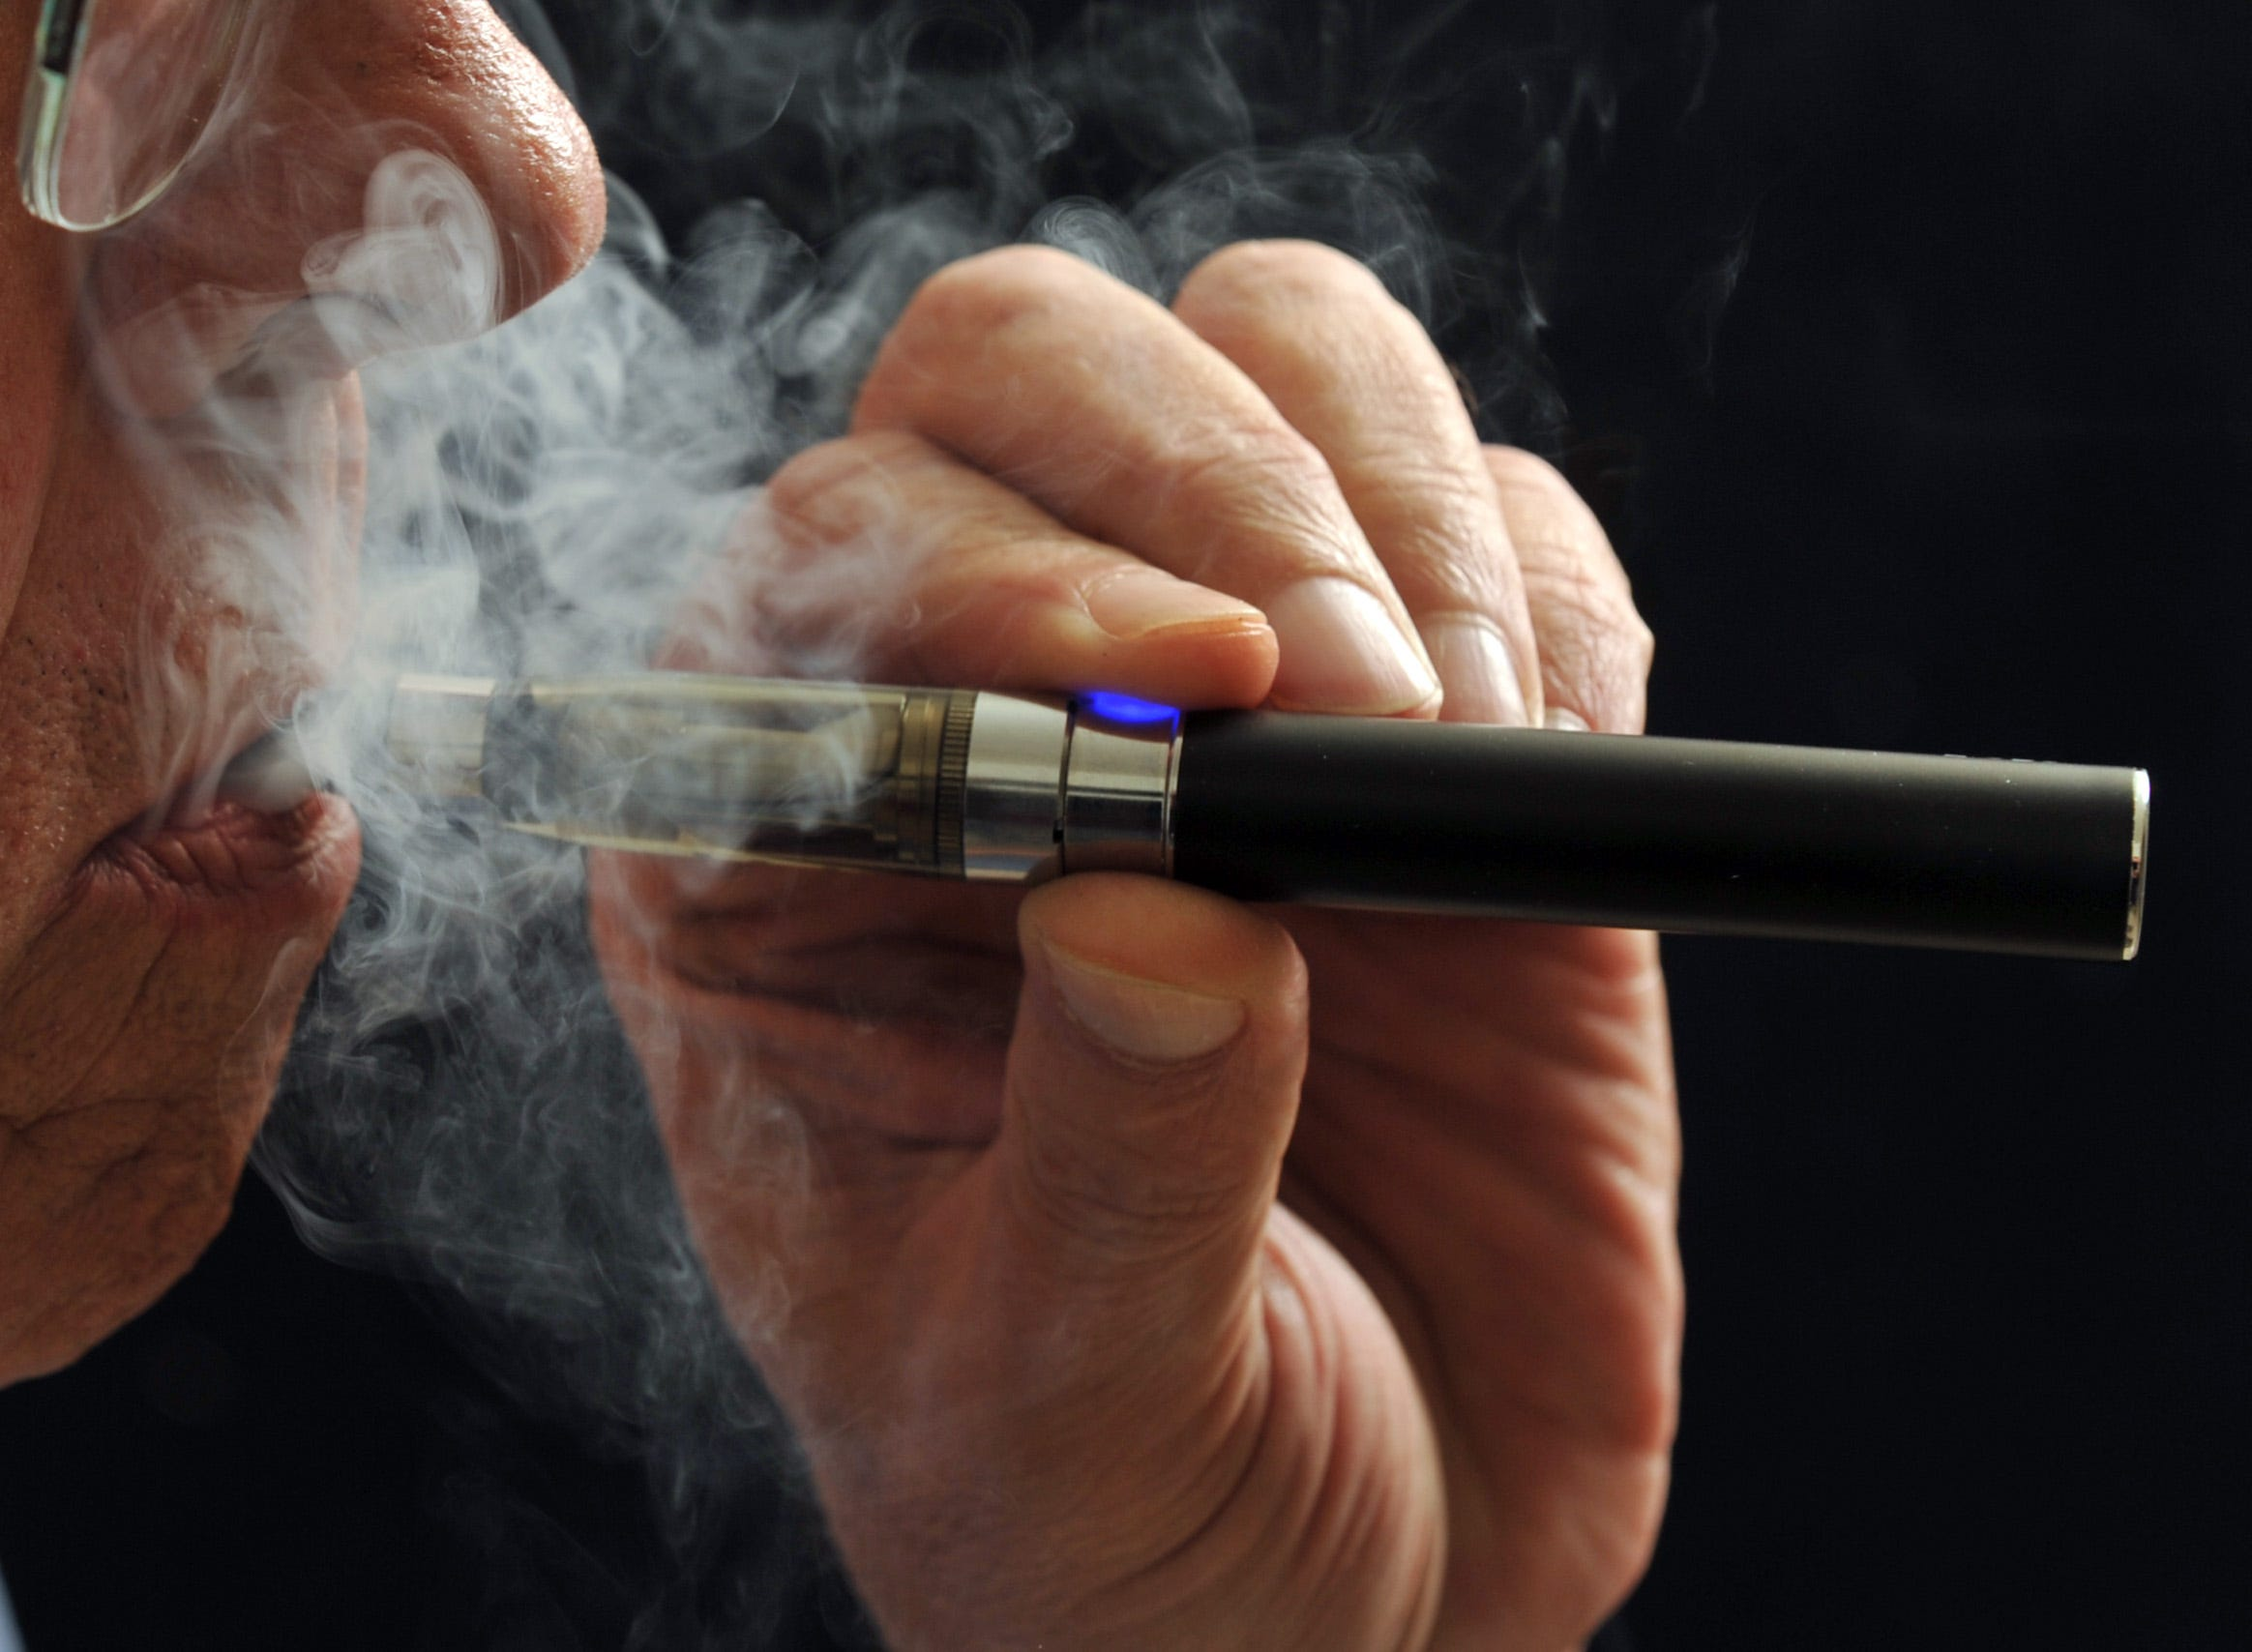 What retailers sell electronic cigarettes